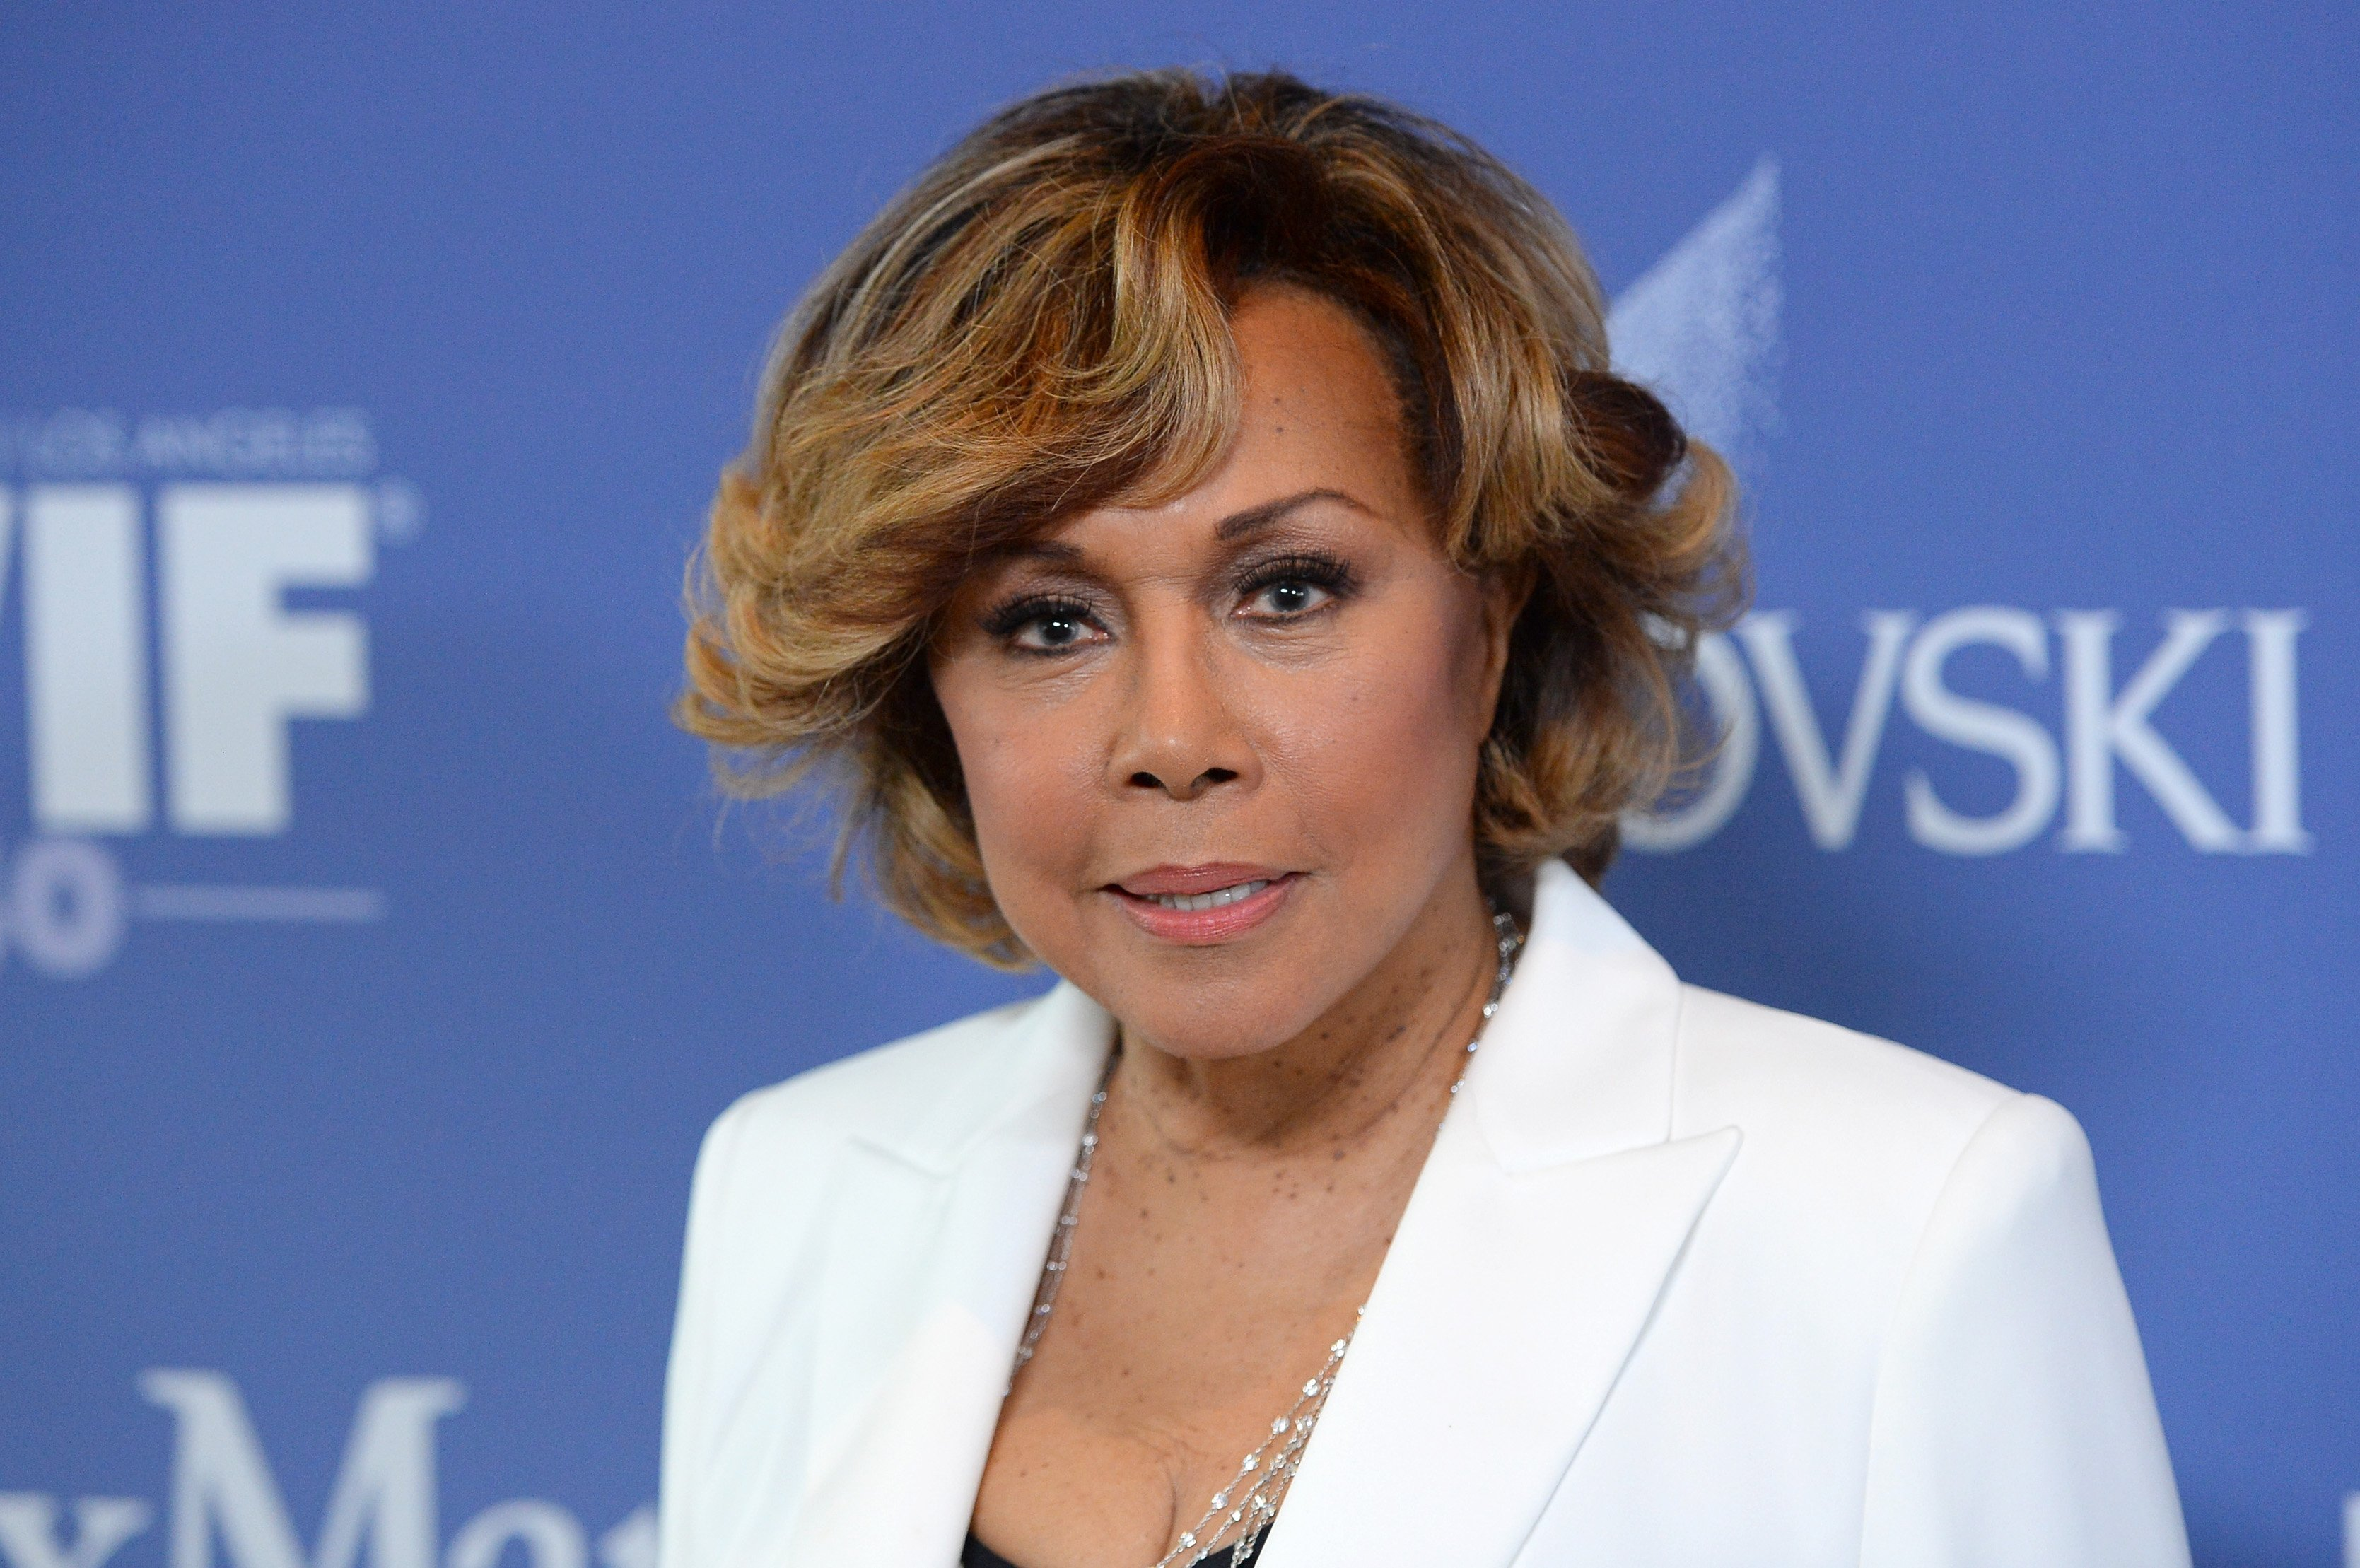 Diahann Carroll at an awards event in 2013. | Photo: Getty Images